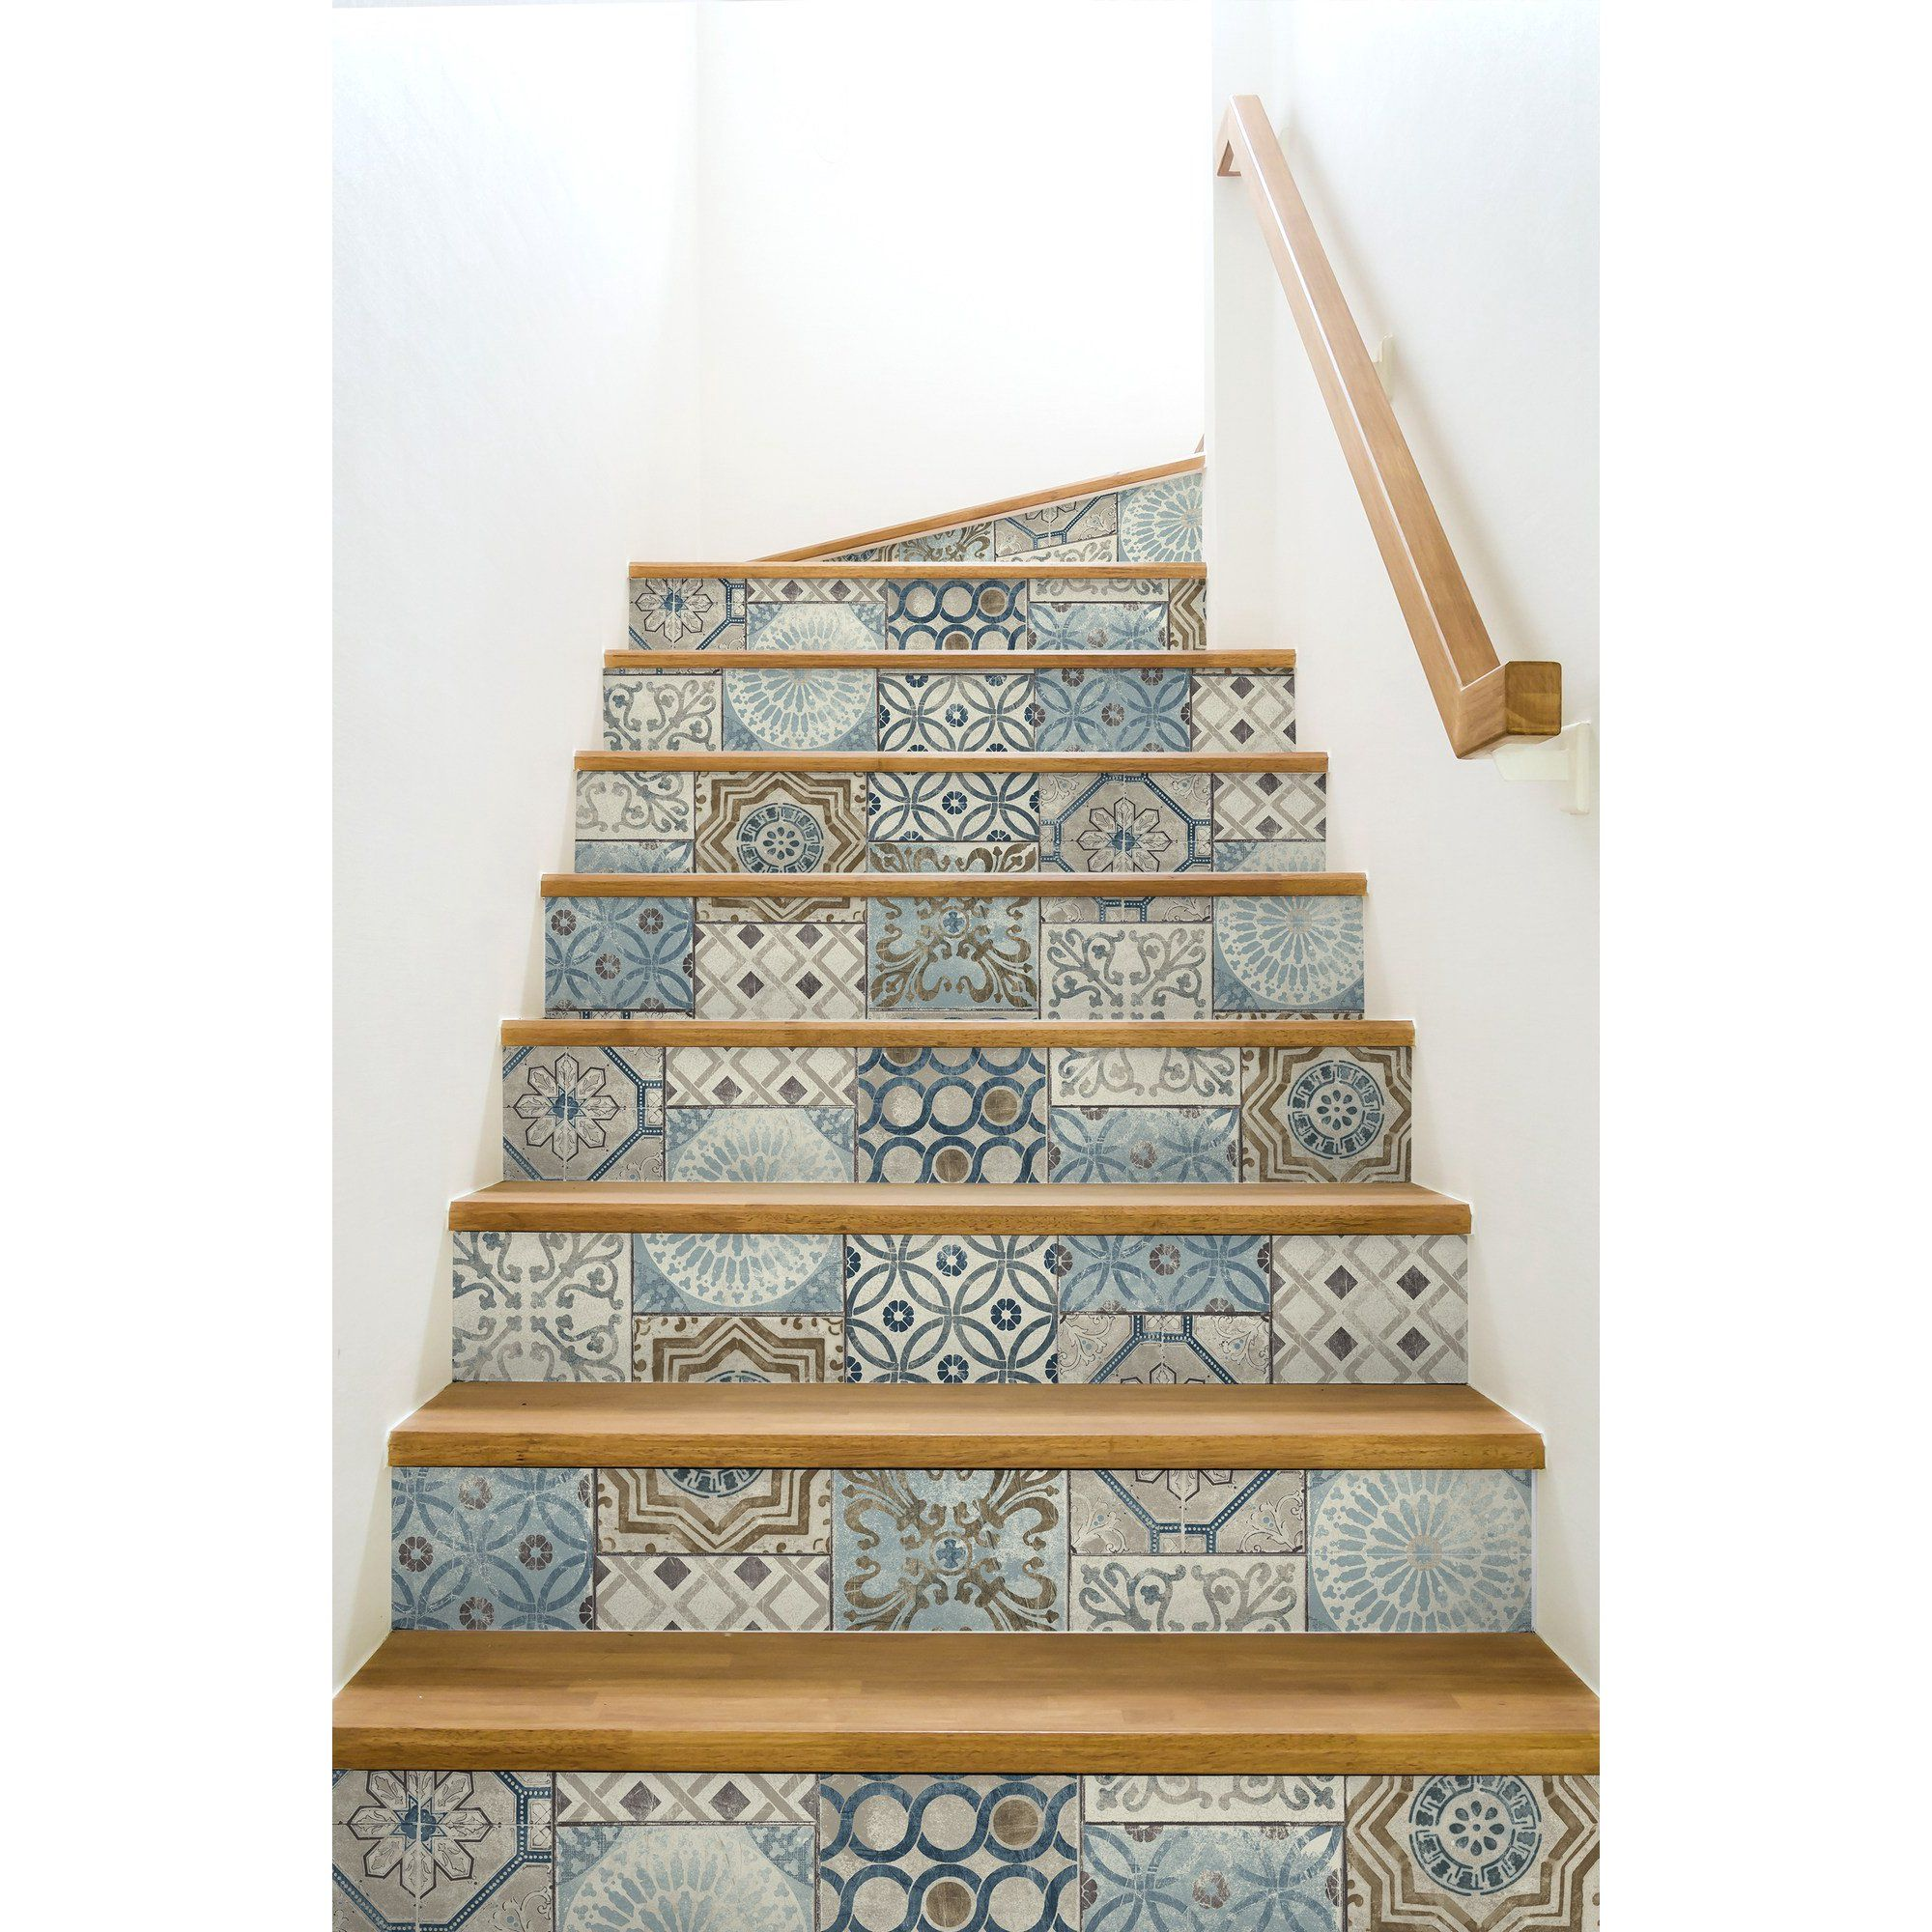 Nextwall Moroccan Style Peel And Stick Nw30002 Mosaic Tile Wallpaper Blue Copper Grey Walmart Com Peel And Stick Wallpaper Textured Wallpaper Moroccan Tile